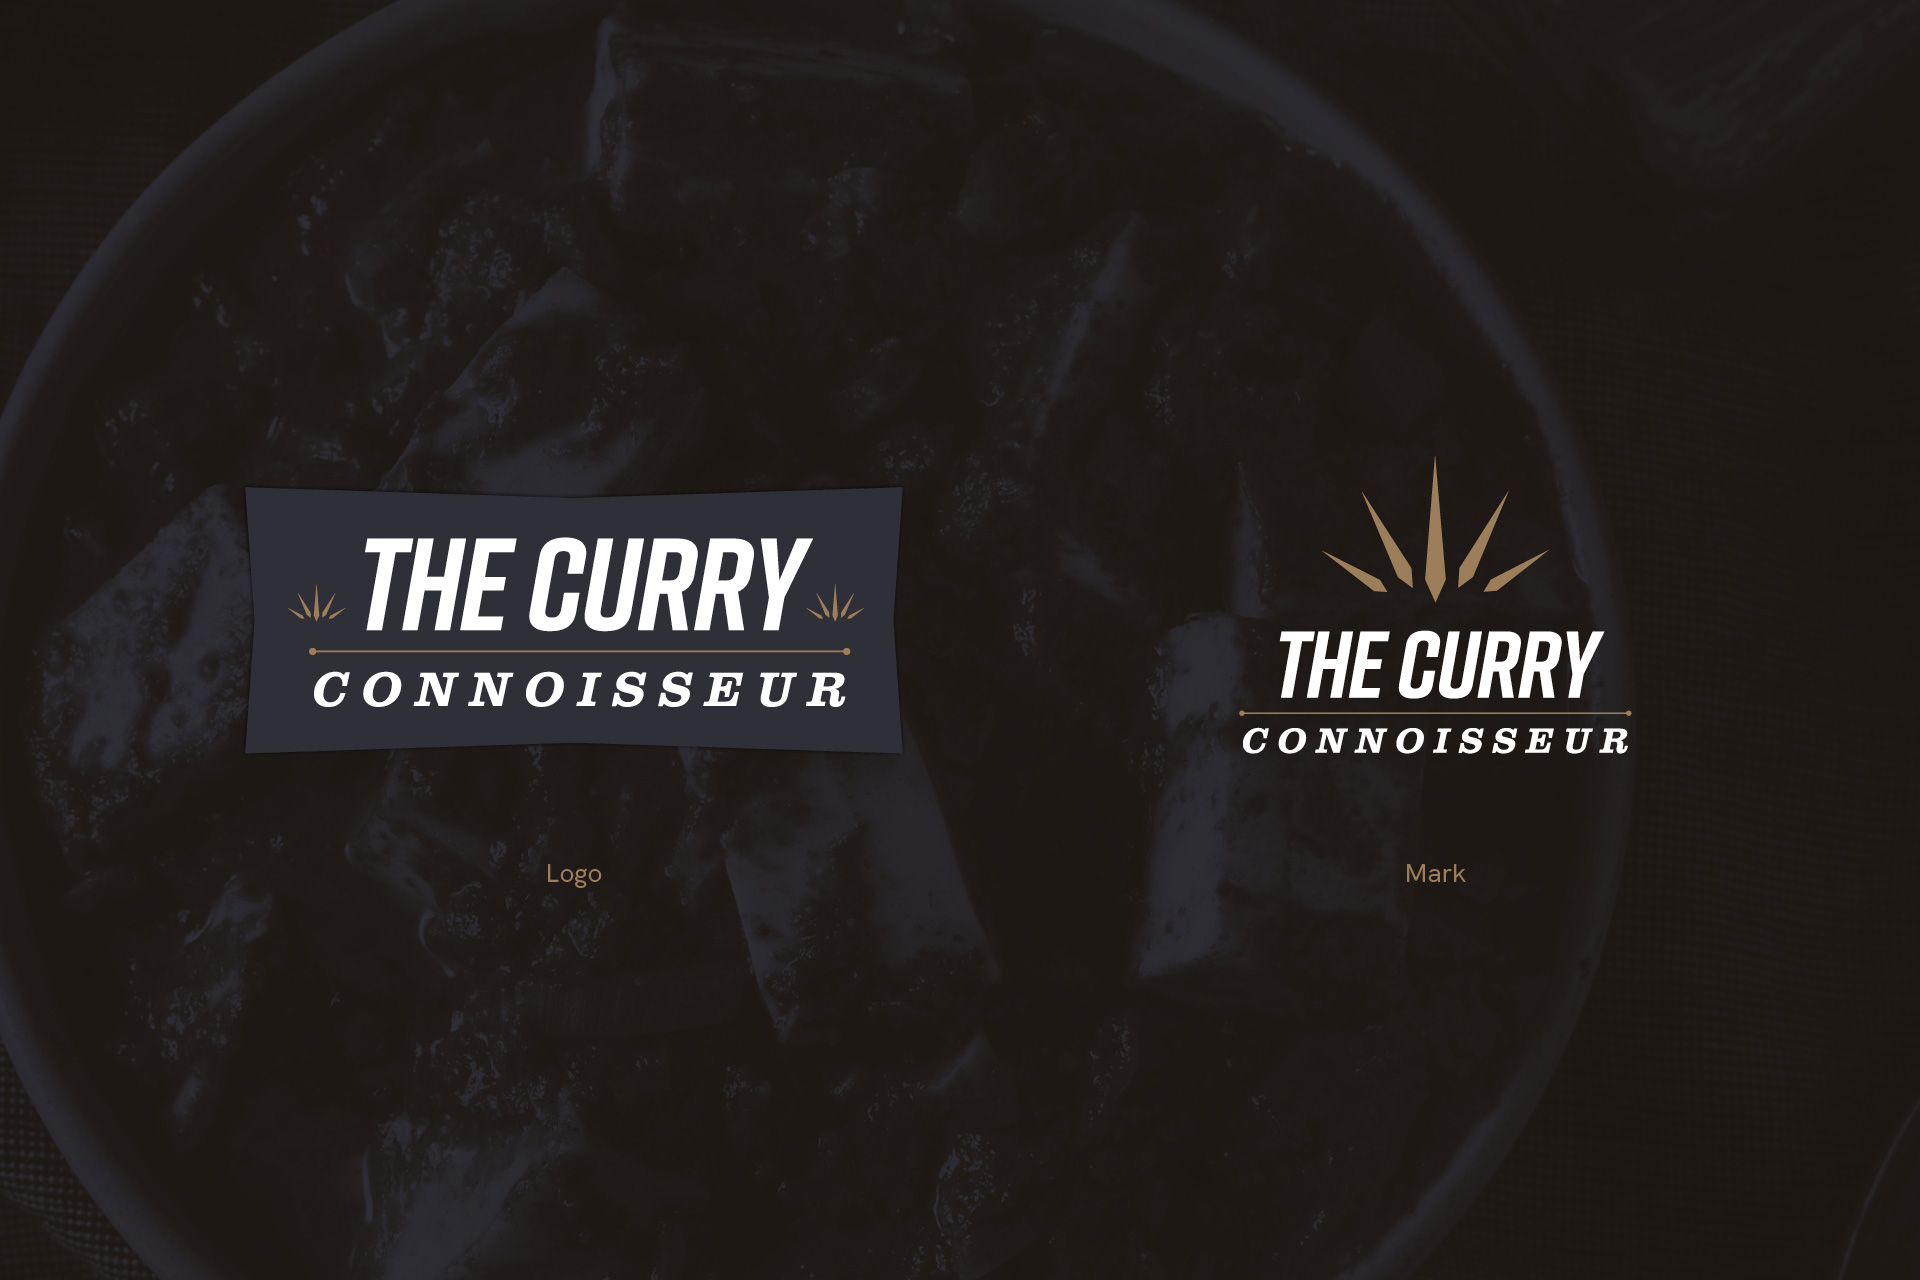 The Curry Connoisseur